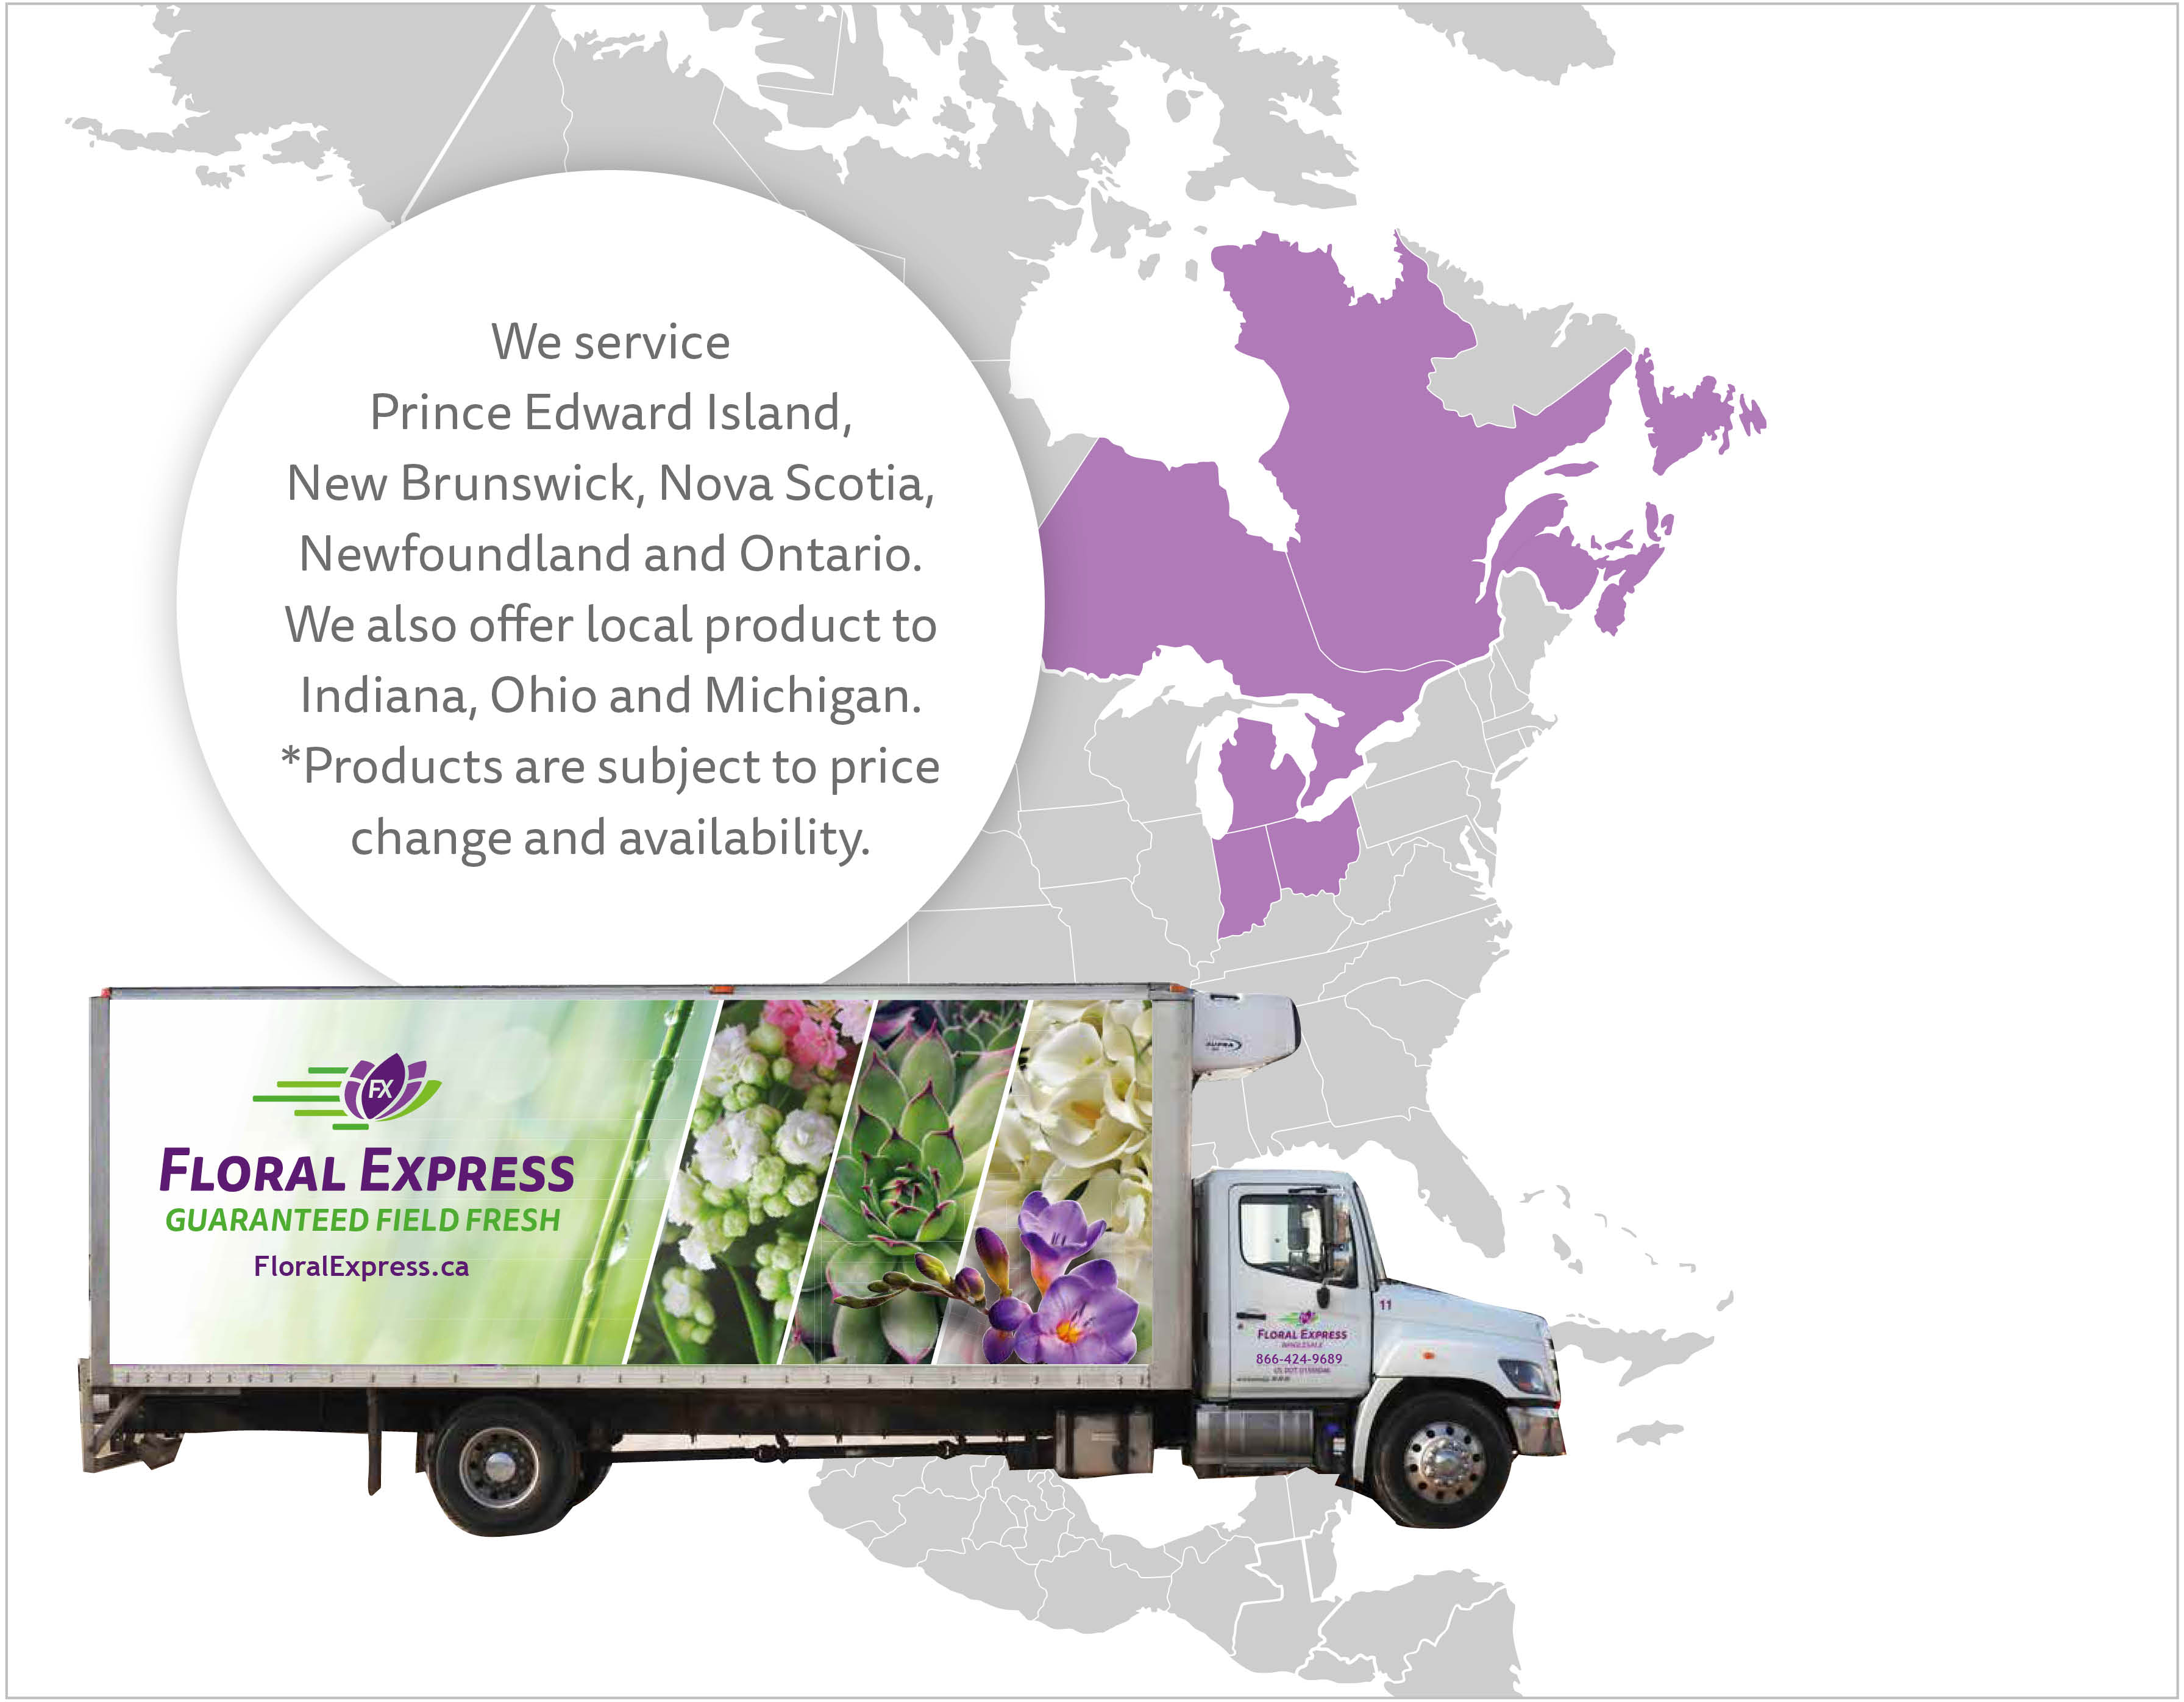 Floral Express provides service for Prince Edward Island, New Brunswick, Nova Scotia, Newfoundland and Ontario. We also offer local product to Indian, Ohio and Michigan. *Products are subject to price change and availability.